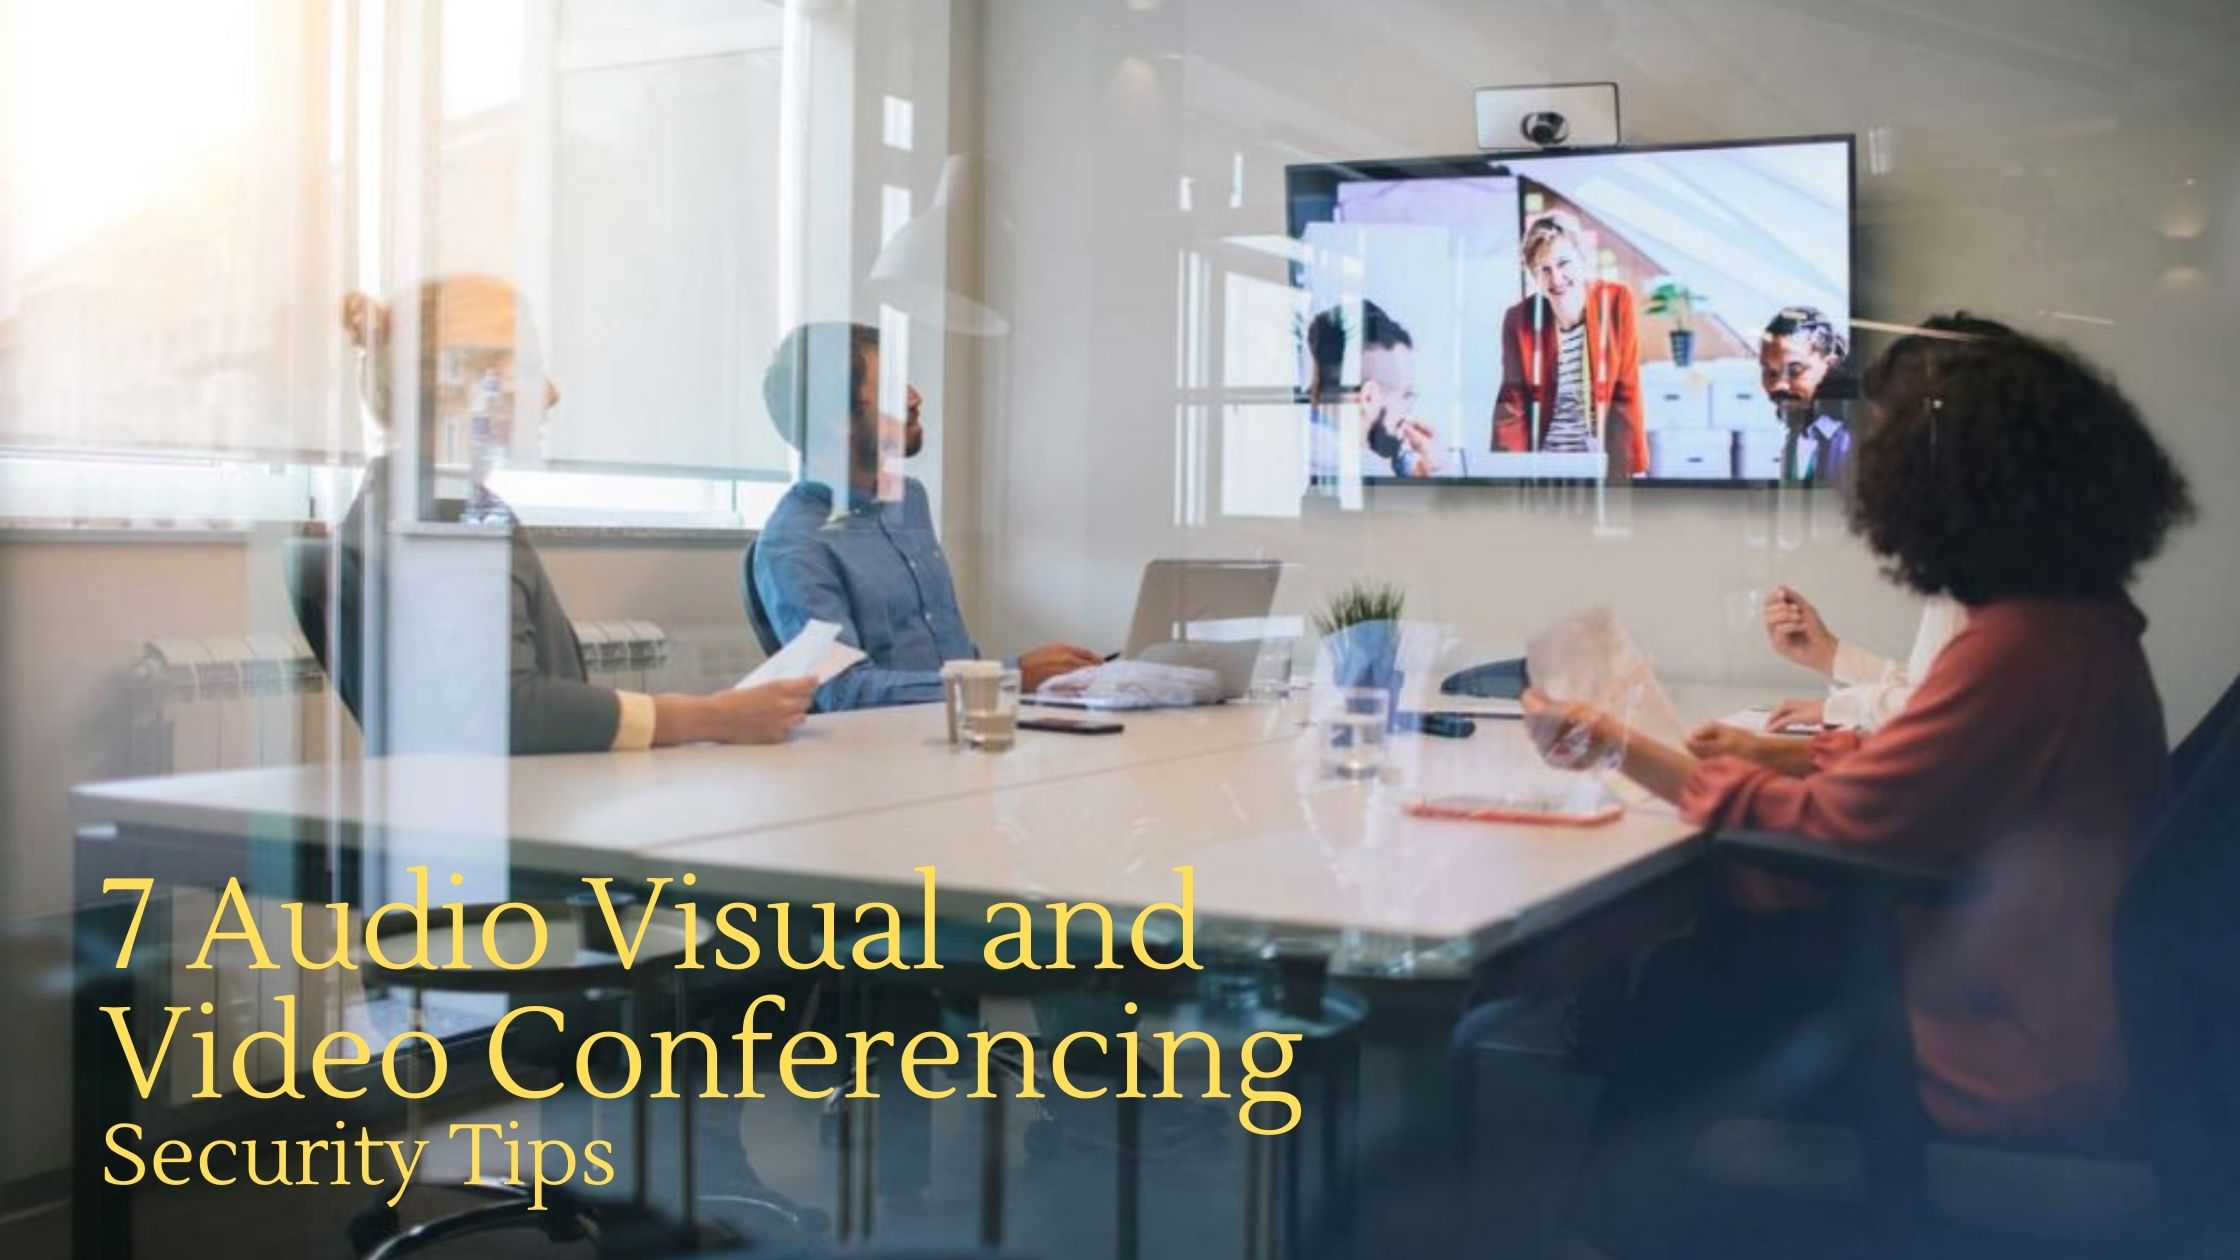 7 audio visual and Video Conferencing Security Tips